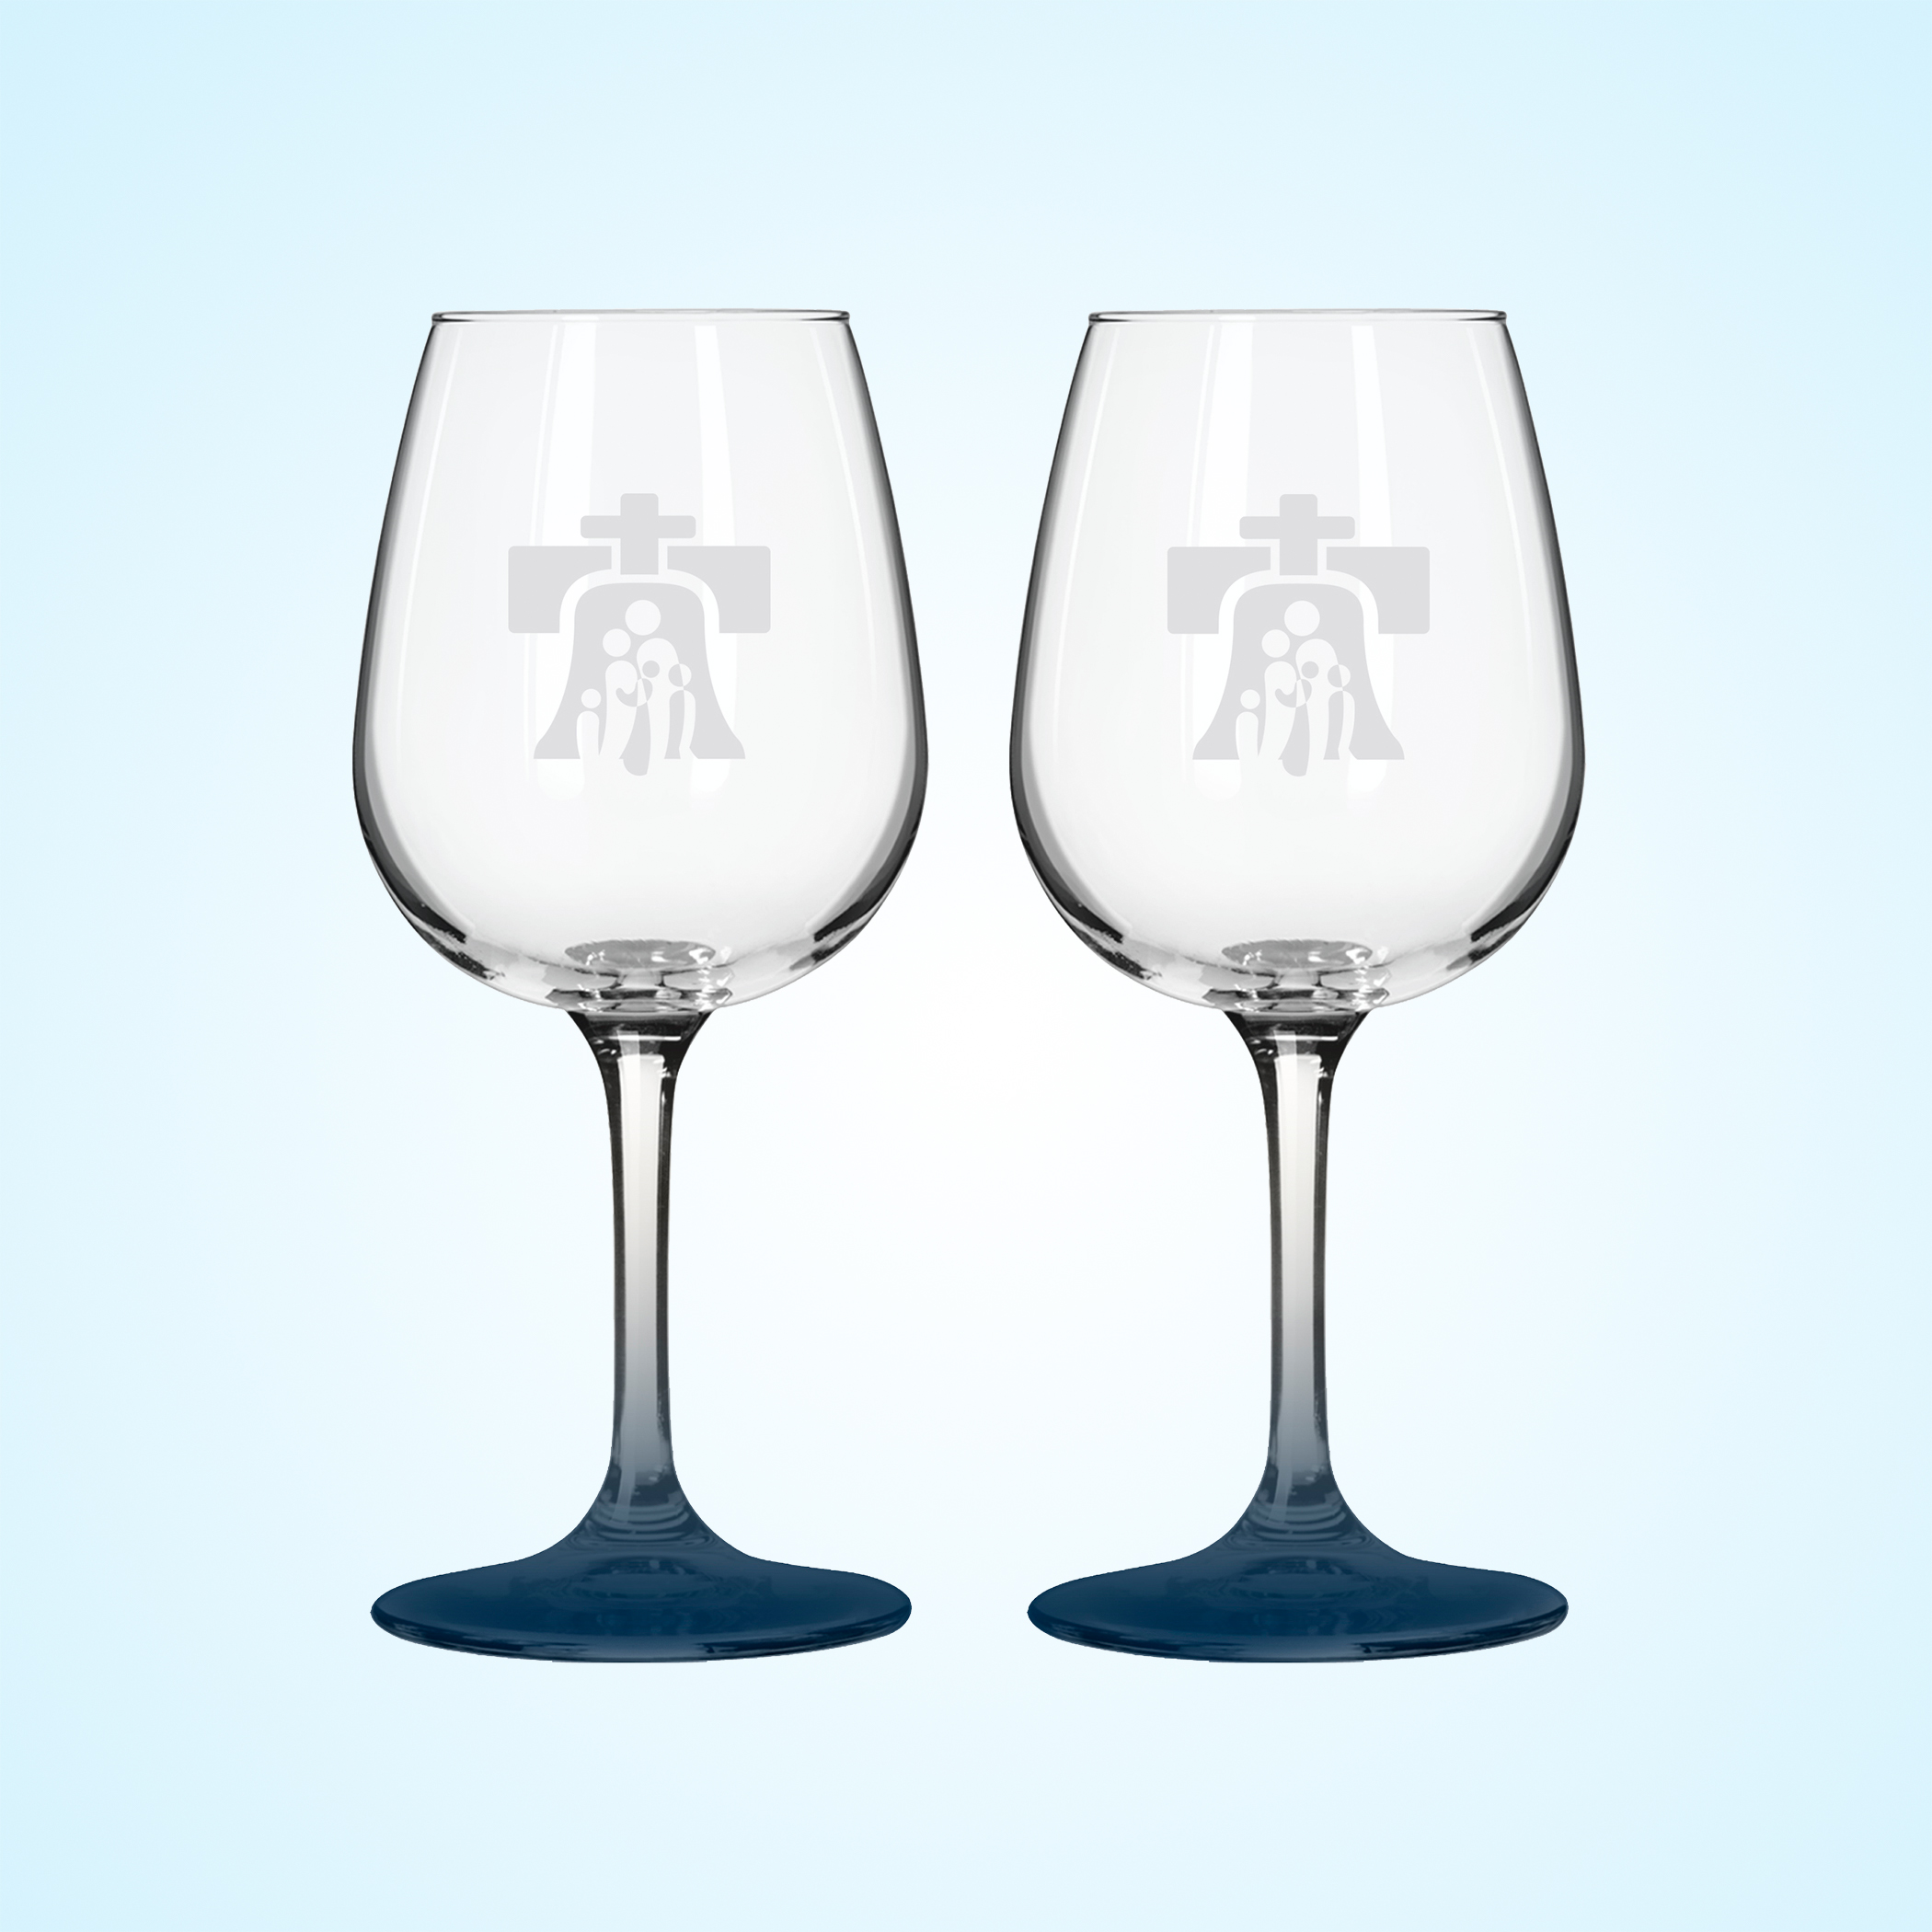 150914_EM_PopeMerch_WineGlasses